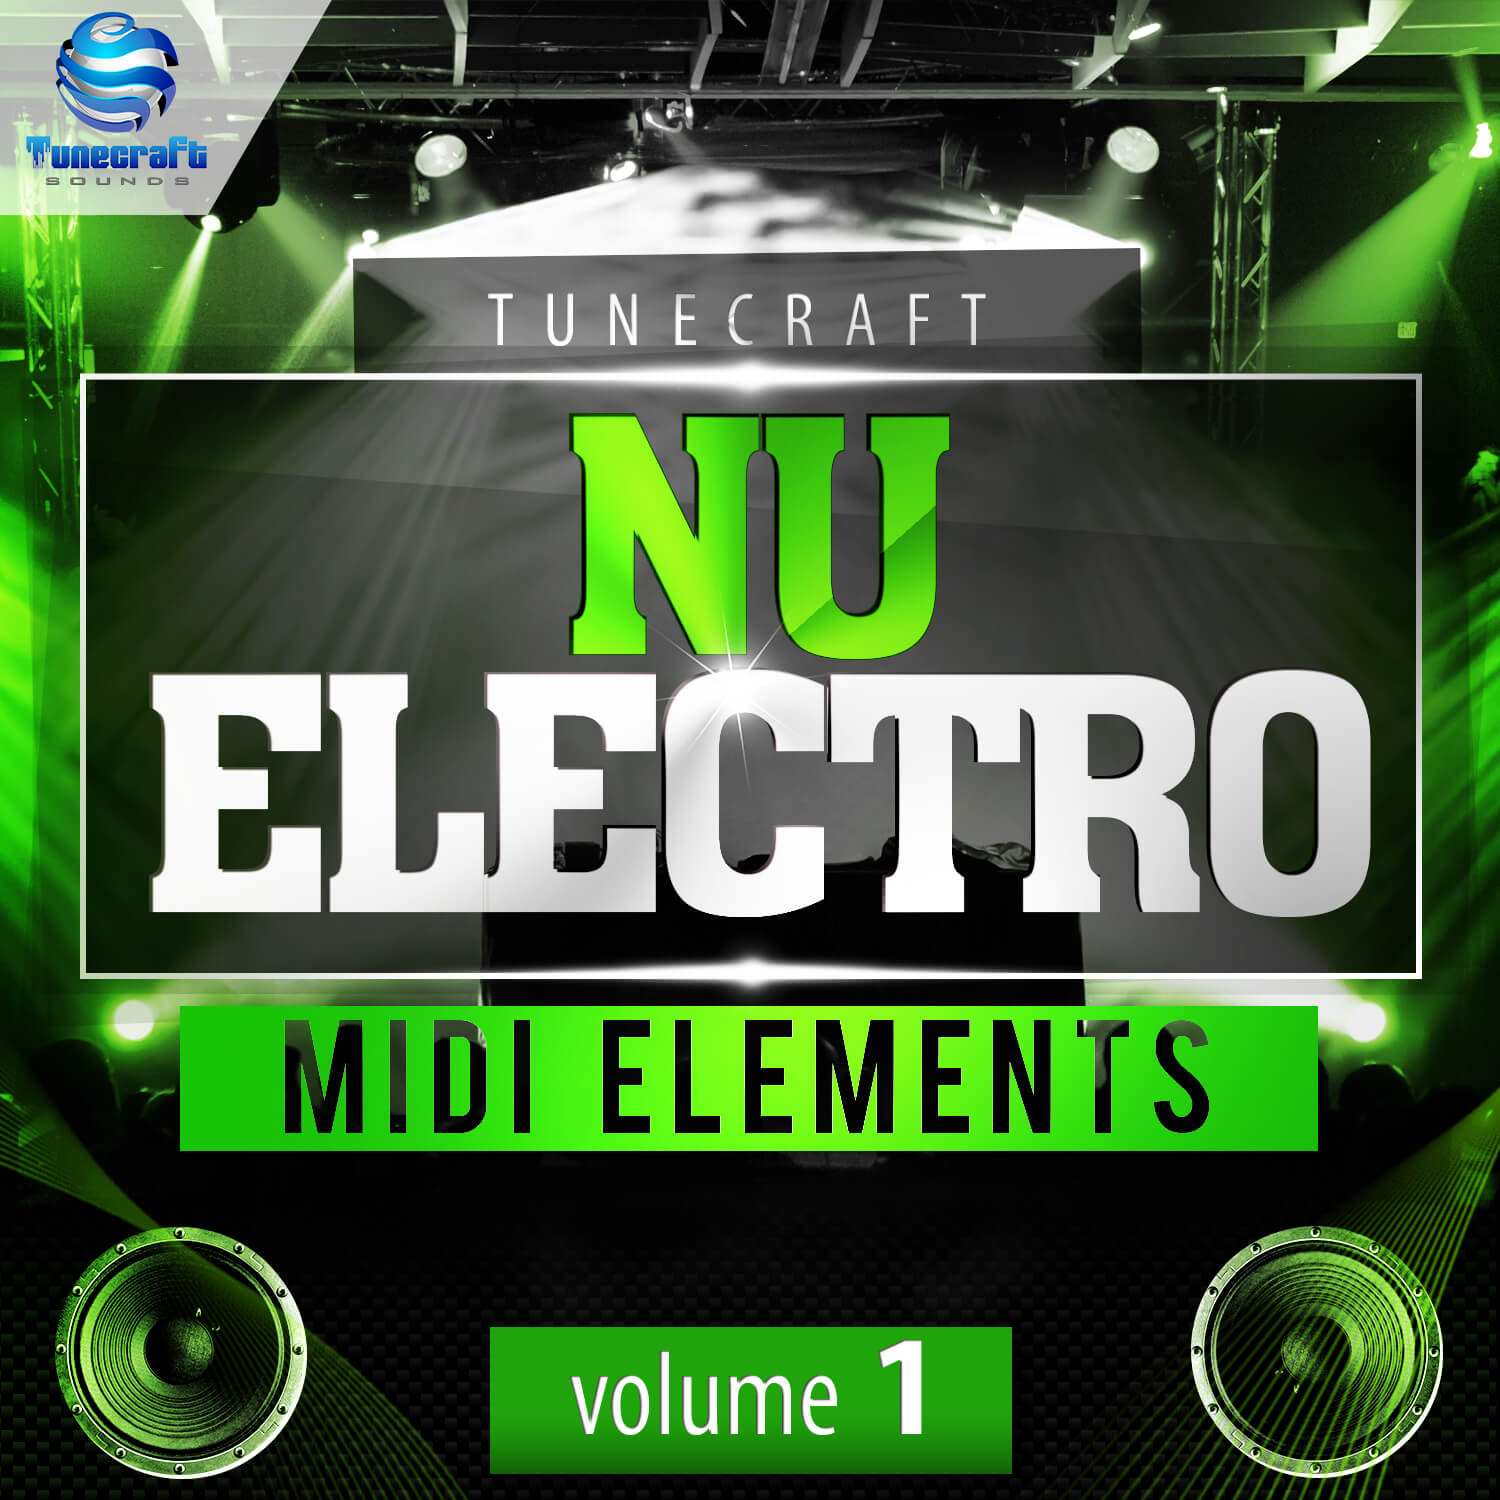 Tunecraft Nu Electro Midi Elements Vol.1